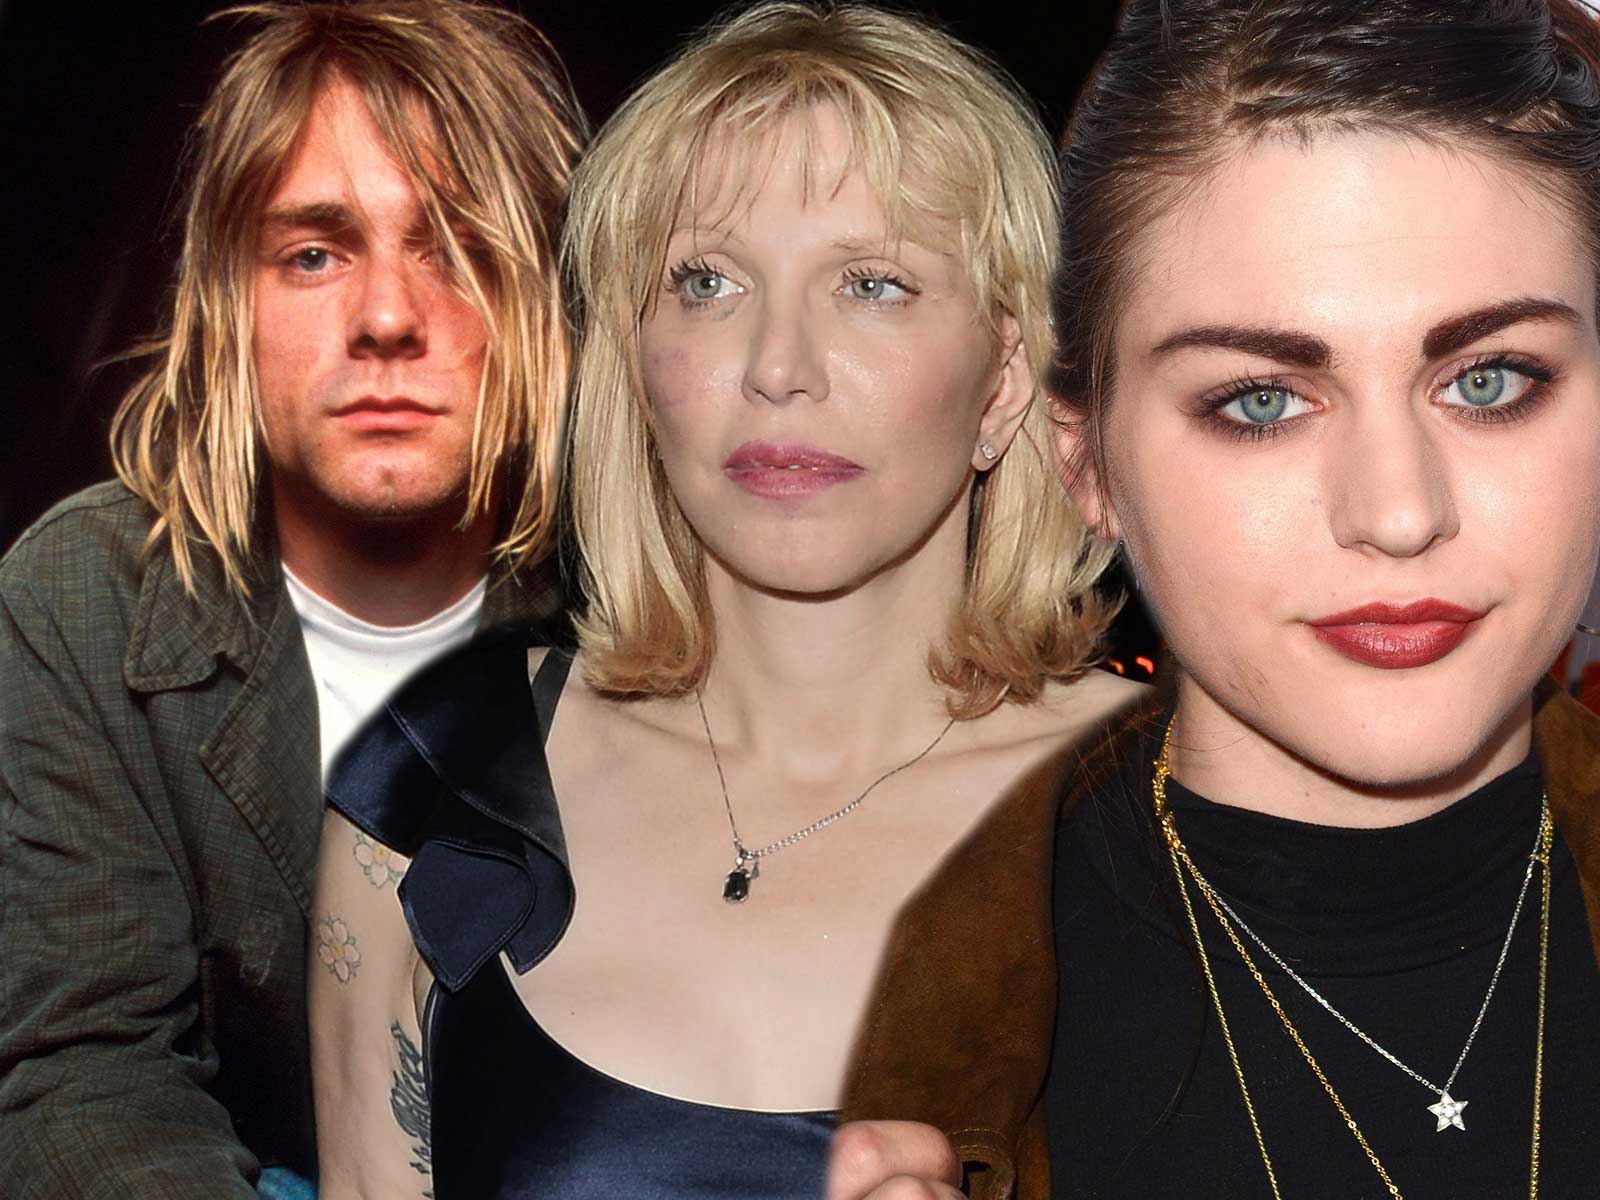 Courtney Love Amp Frances Bean Ramp Up The Fight To Keep